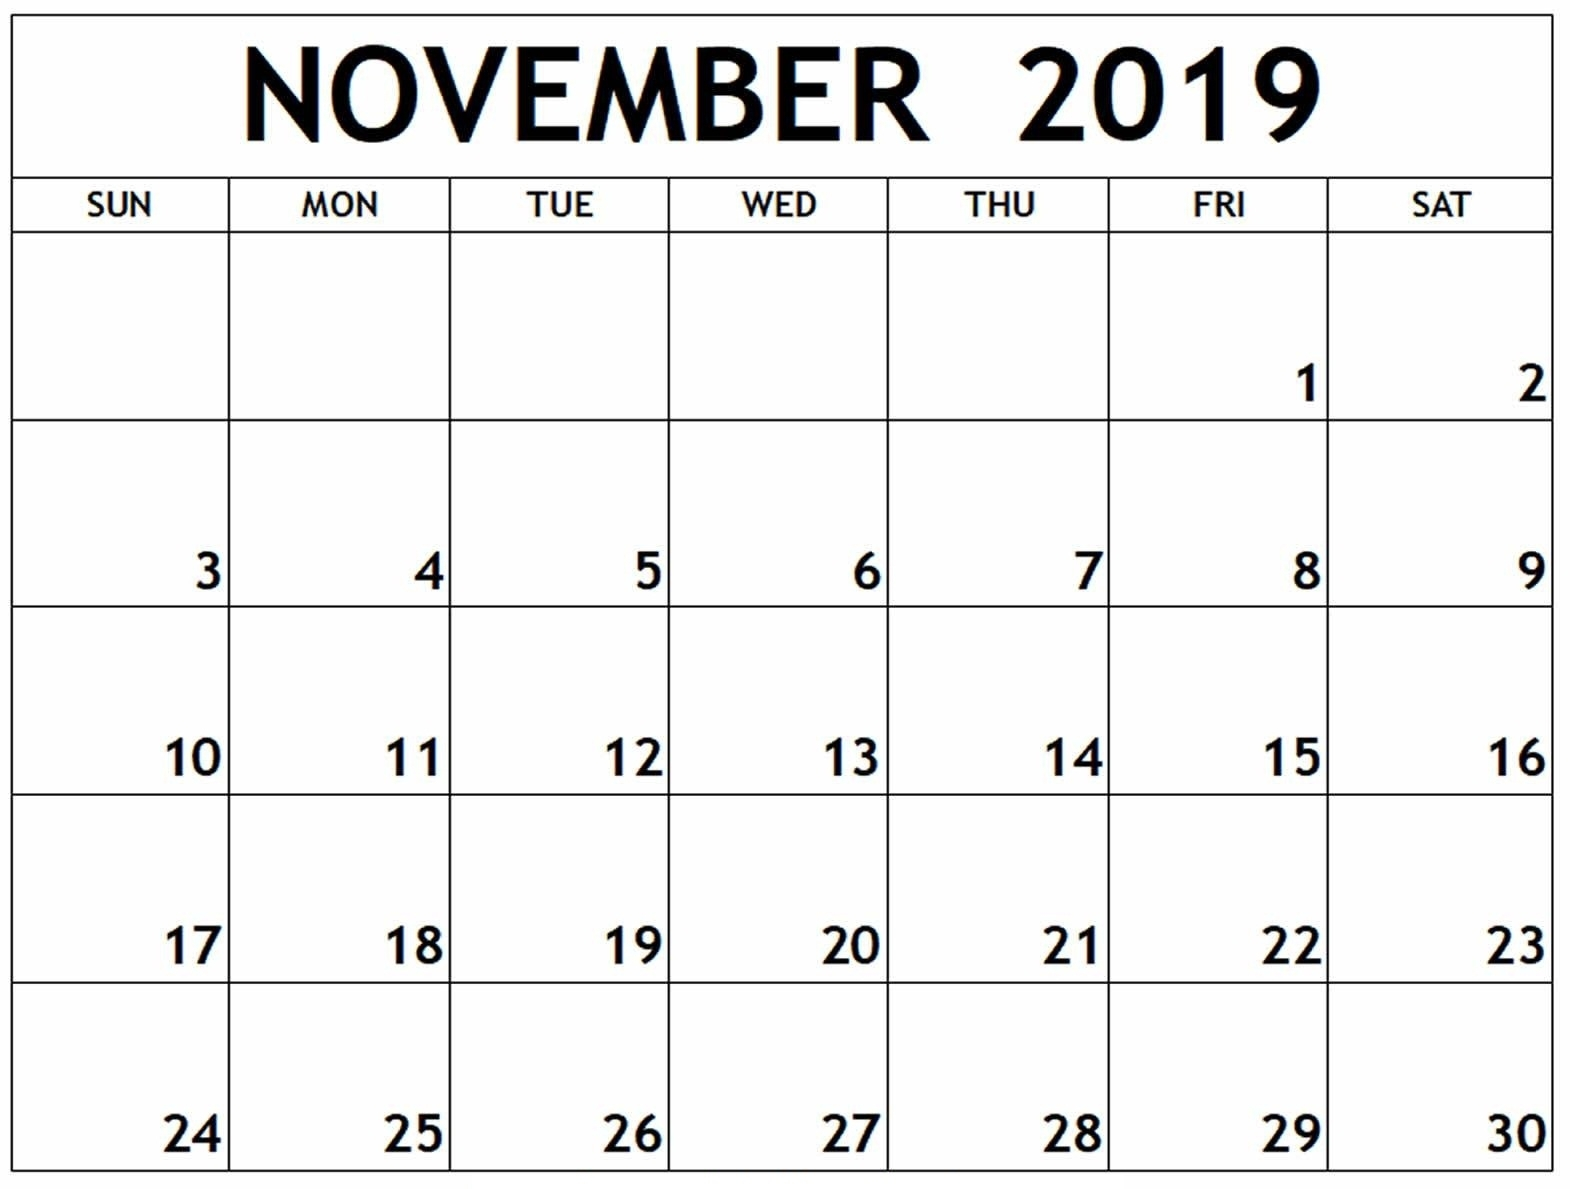 Calendar November 2019 Printable Template - 2019 Calendars throughout Printable Calendar With Space To Write